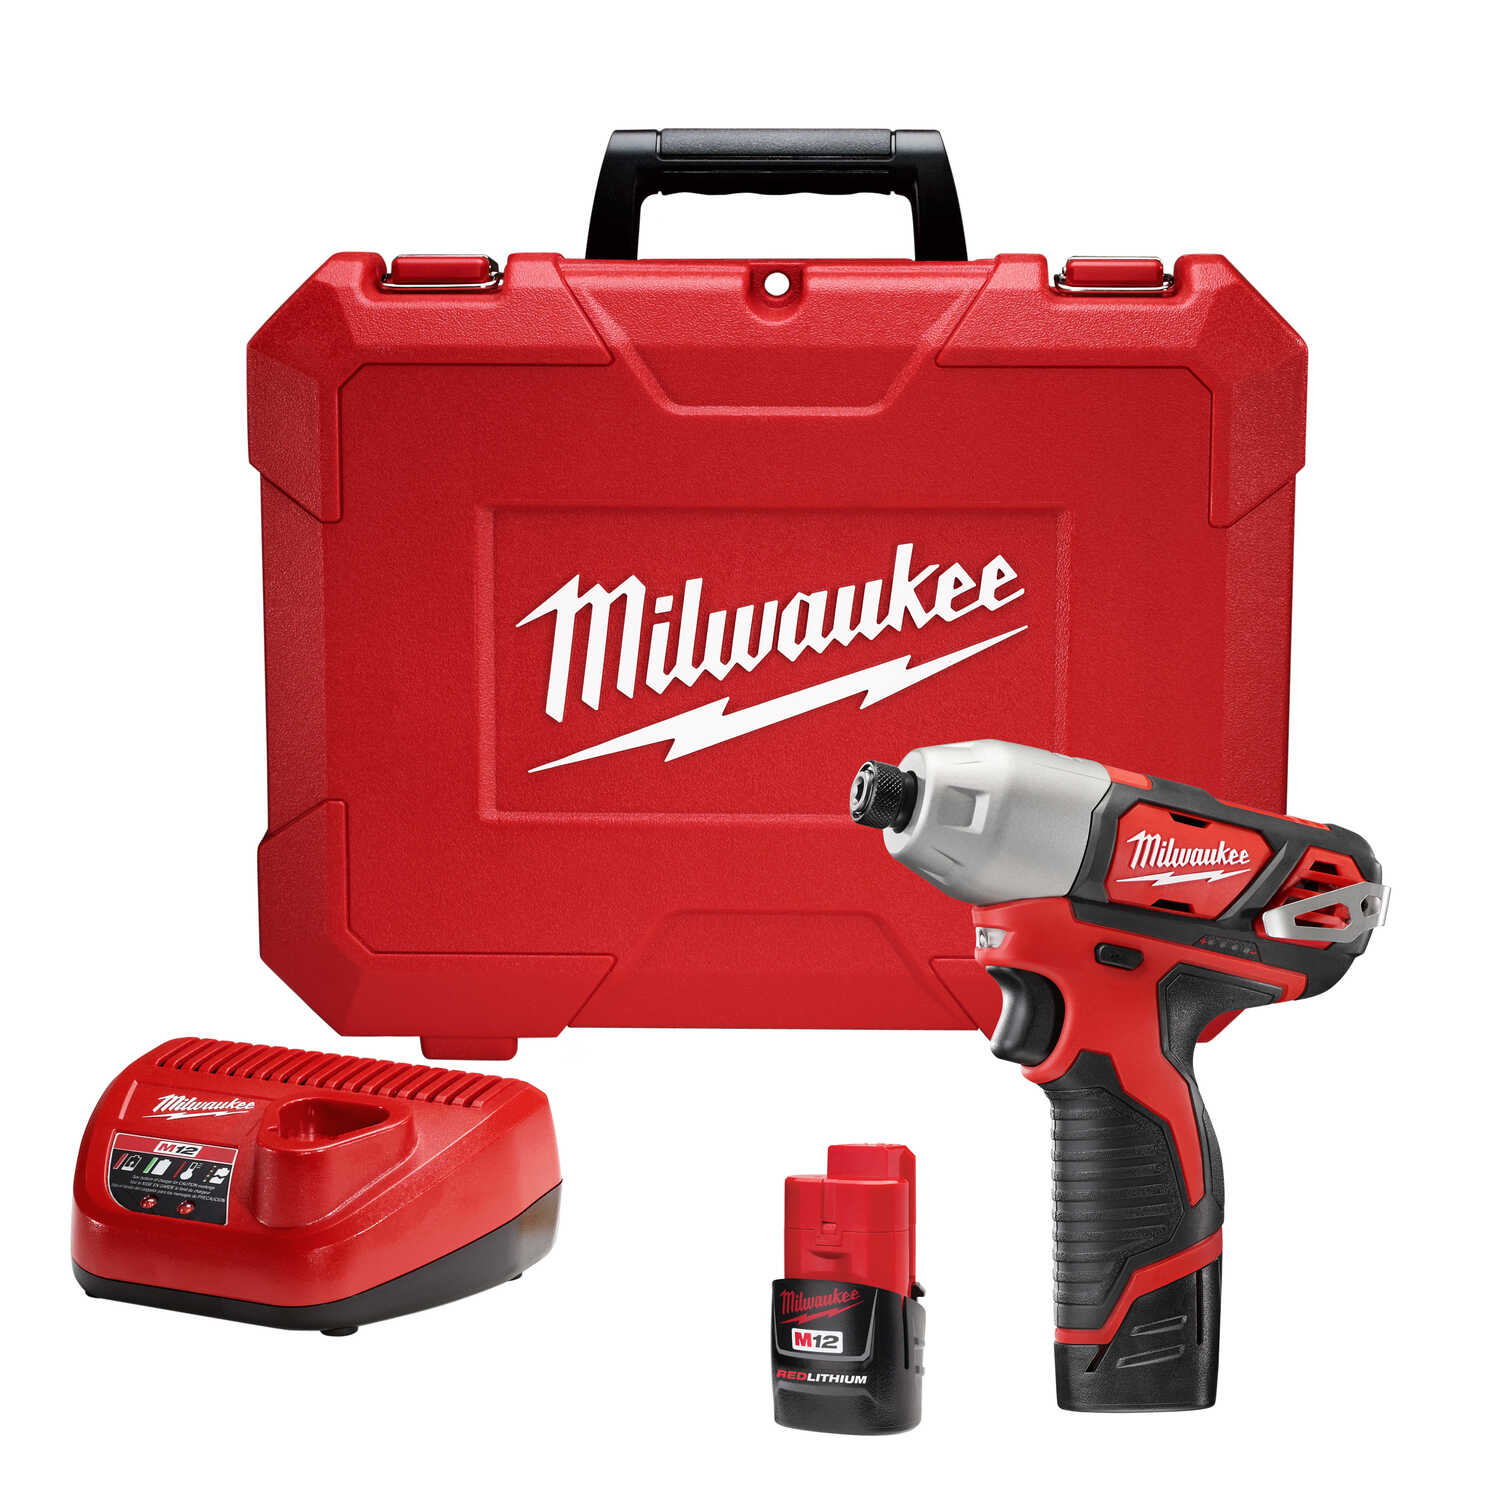 Milwaukee  M12  12 volt 1/4 in. Cordless  Impact Driver  Kit 2500 rpm 3200 ipm 1000 lbf/in Hex